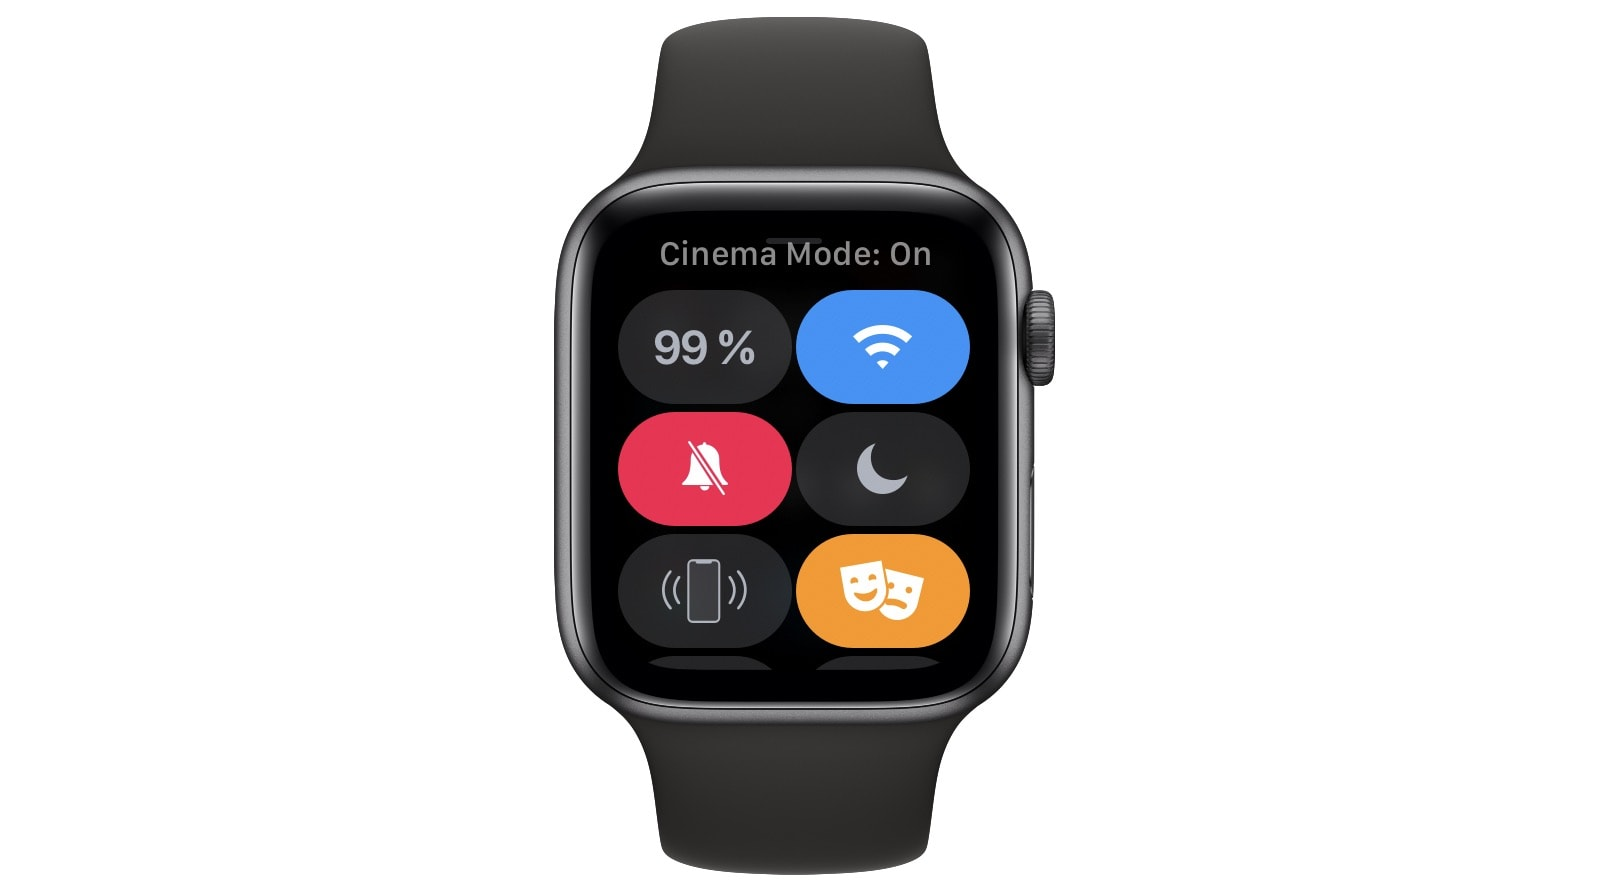 Apple Watch Cinema Mode, aka  bed mode.